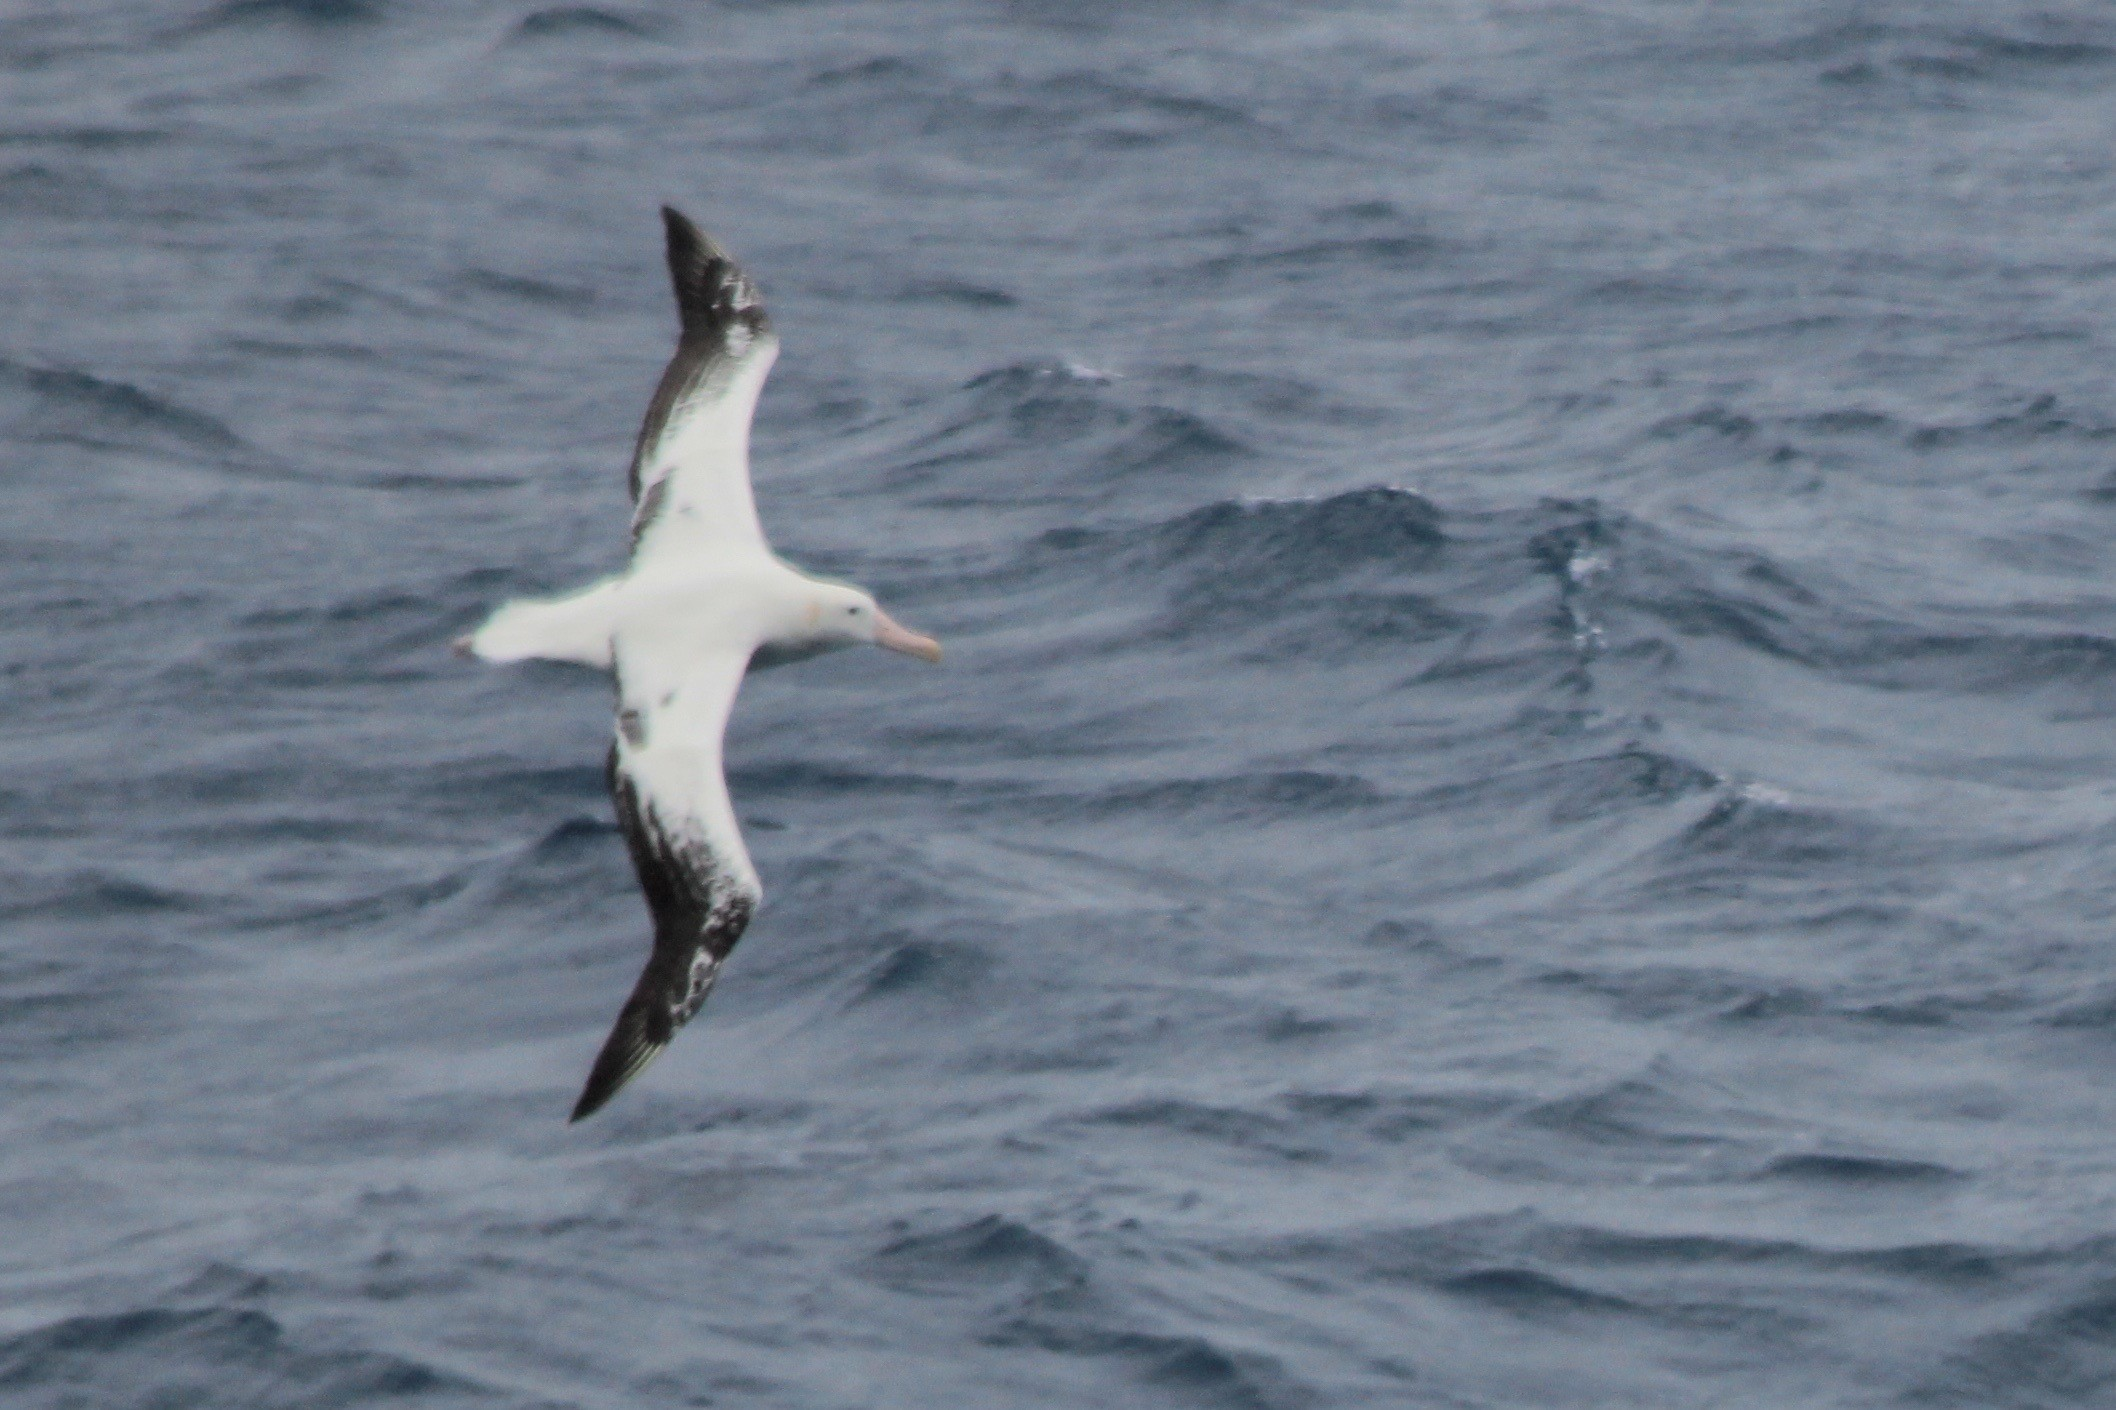 Wandering albatross in flight.